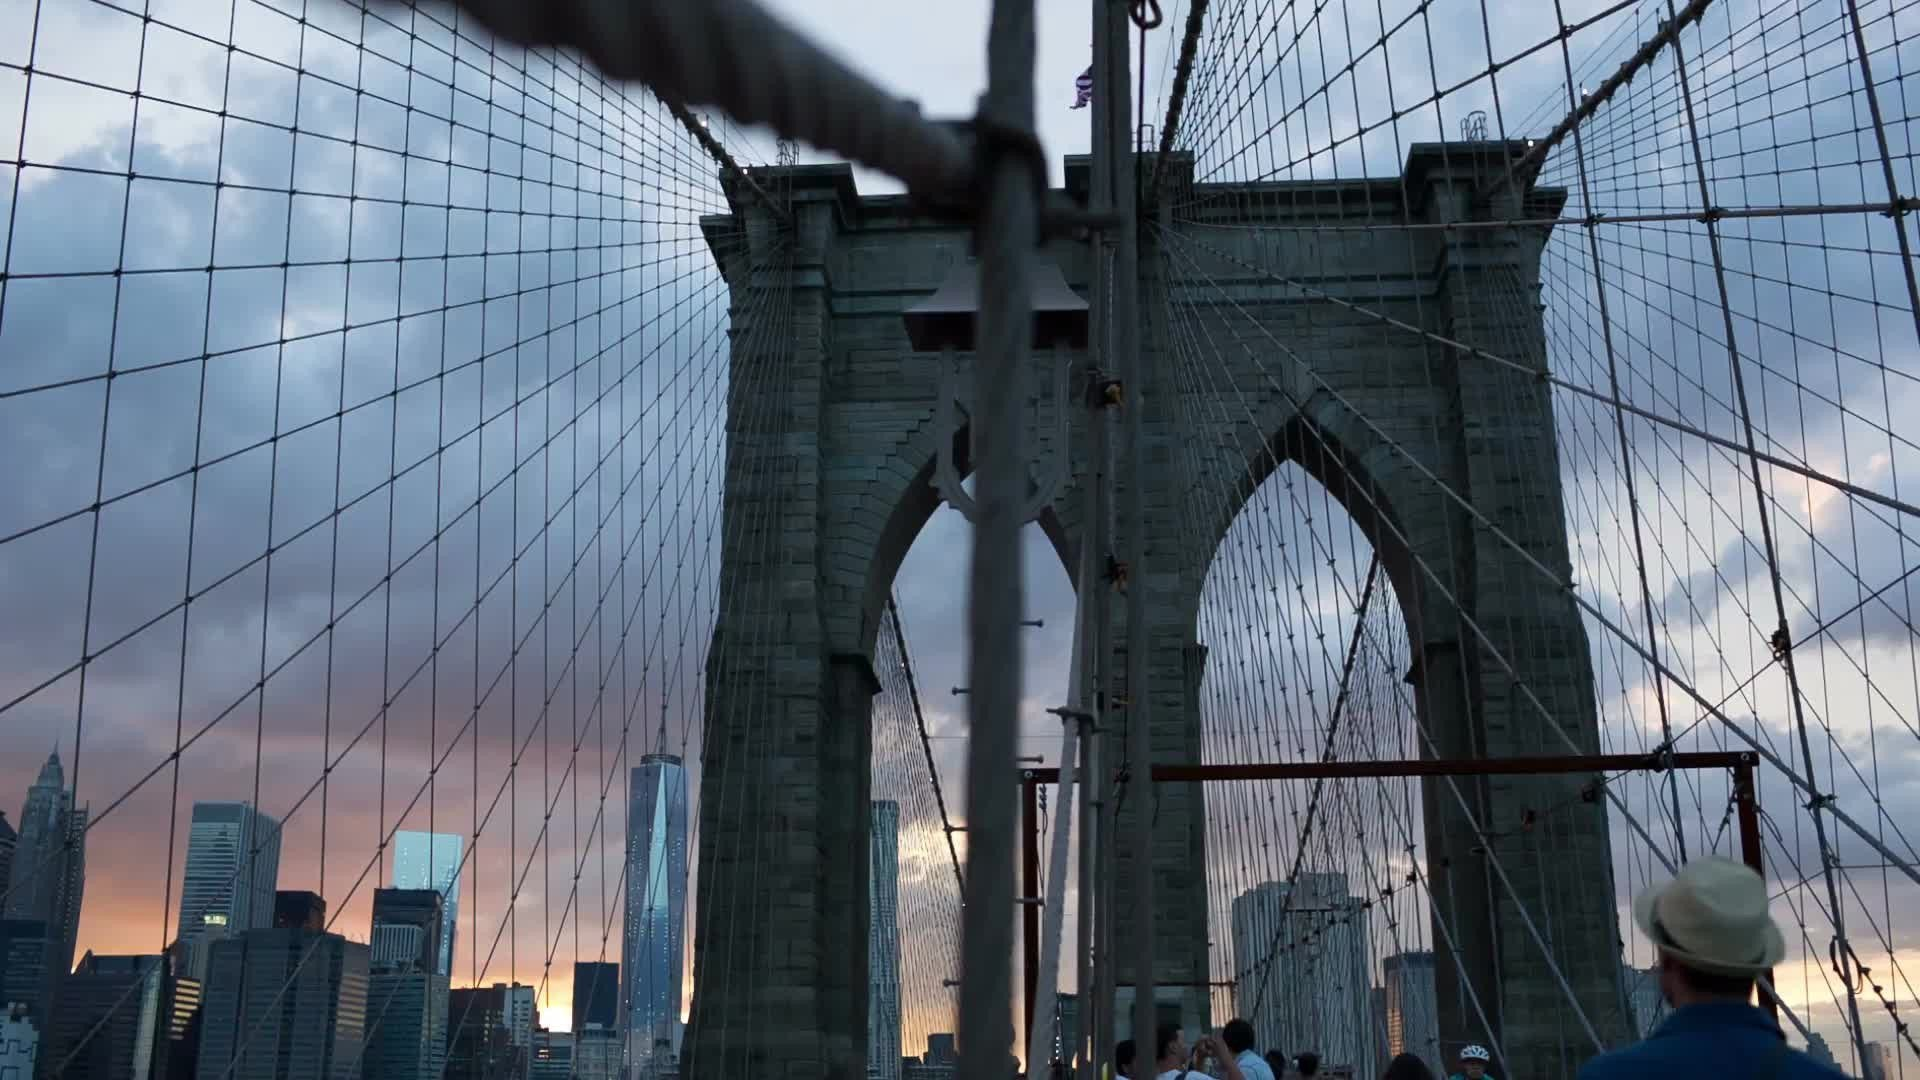 Brooklyn Bridge at beautiful sunset on summer evening with Manhattan skyline in NYC